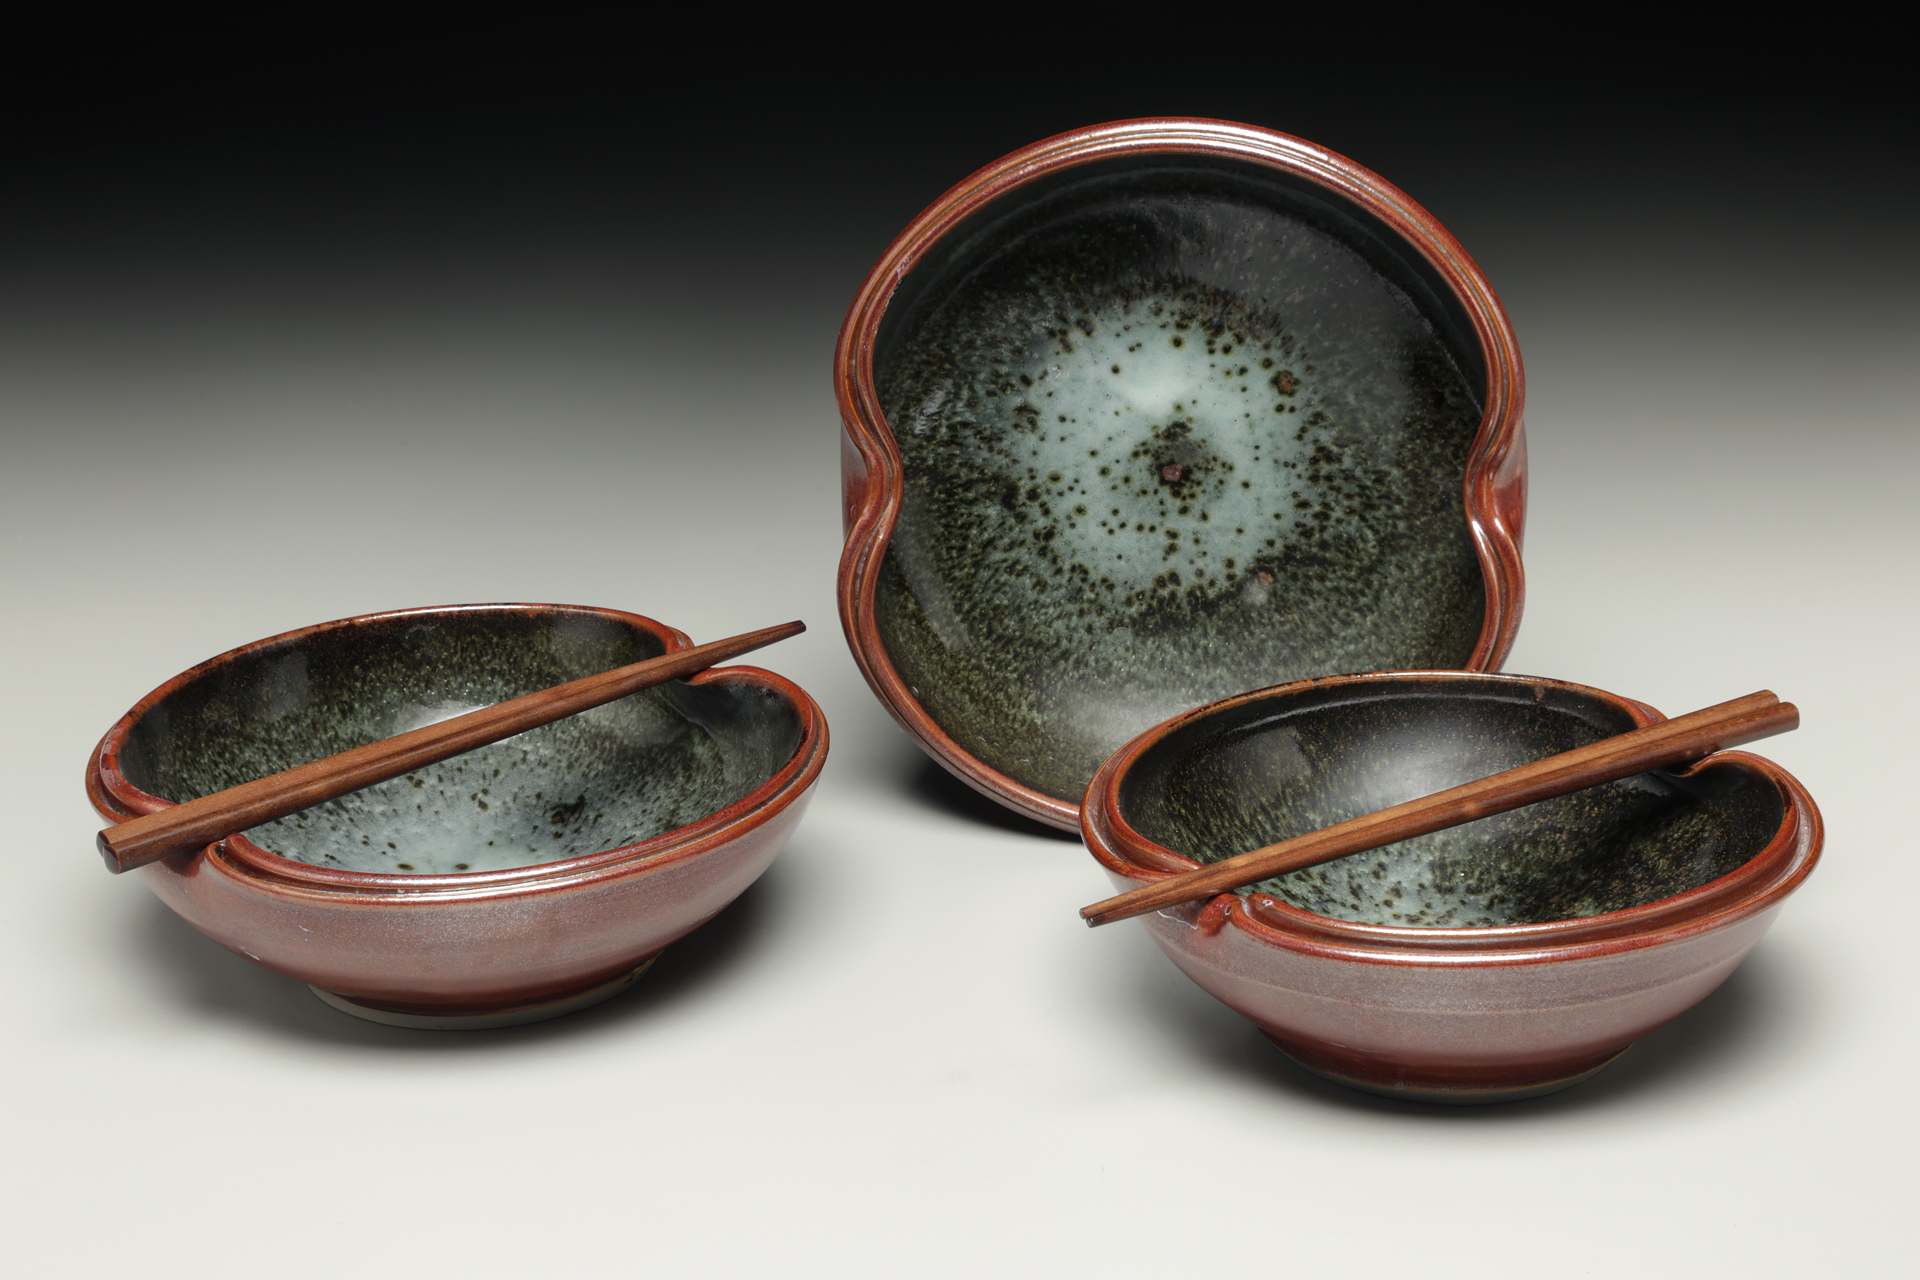 Chopstix Bowls, Starry Night glaze, Lori Theriault